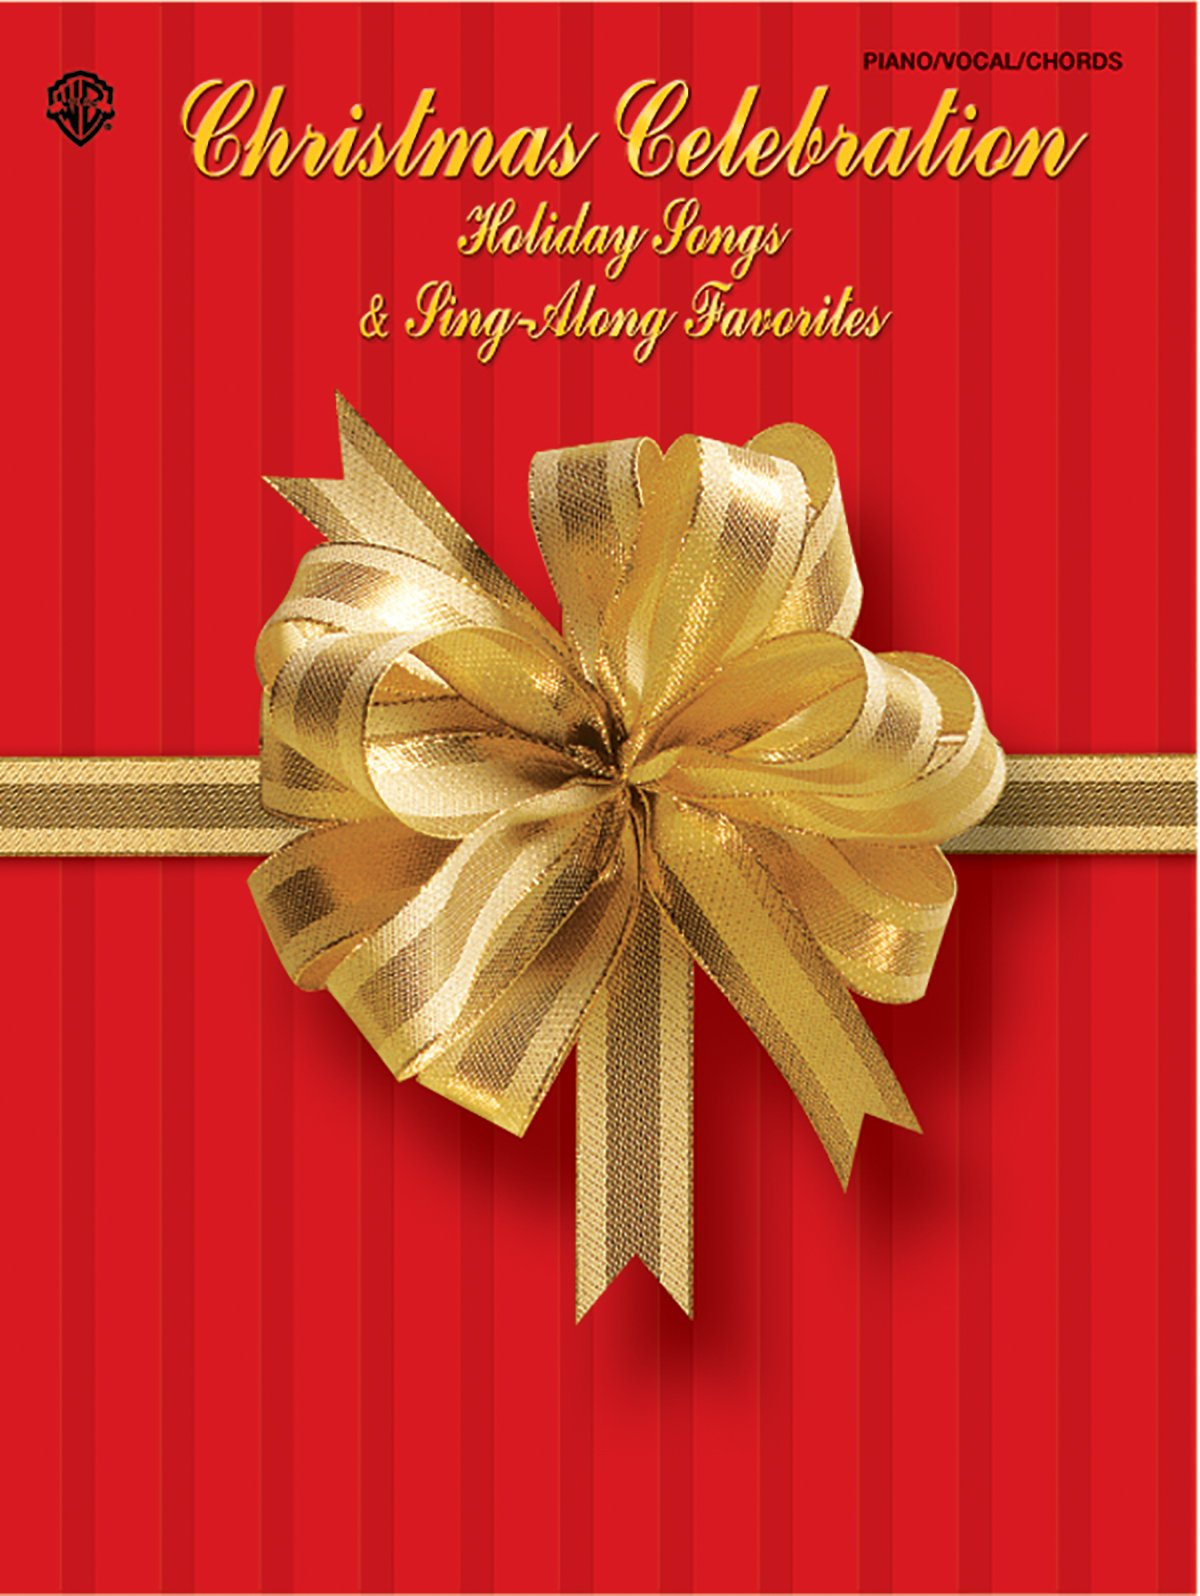 Christmas Celebration Holiday Songs Sing Along Favorites Piano Vocal Chords Alfred Music 0654979065654 Amazon Com Books